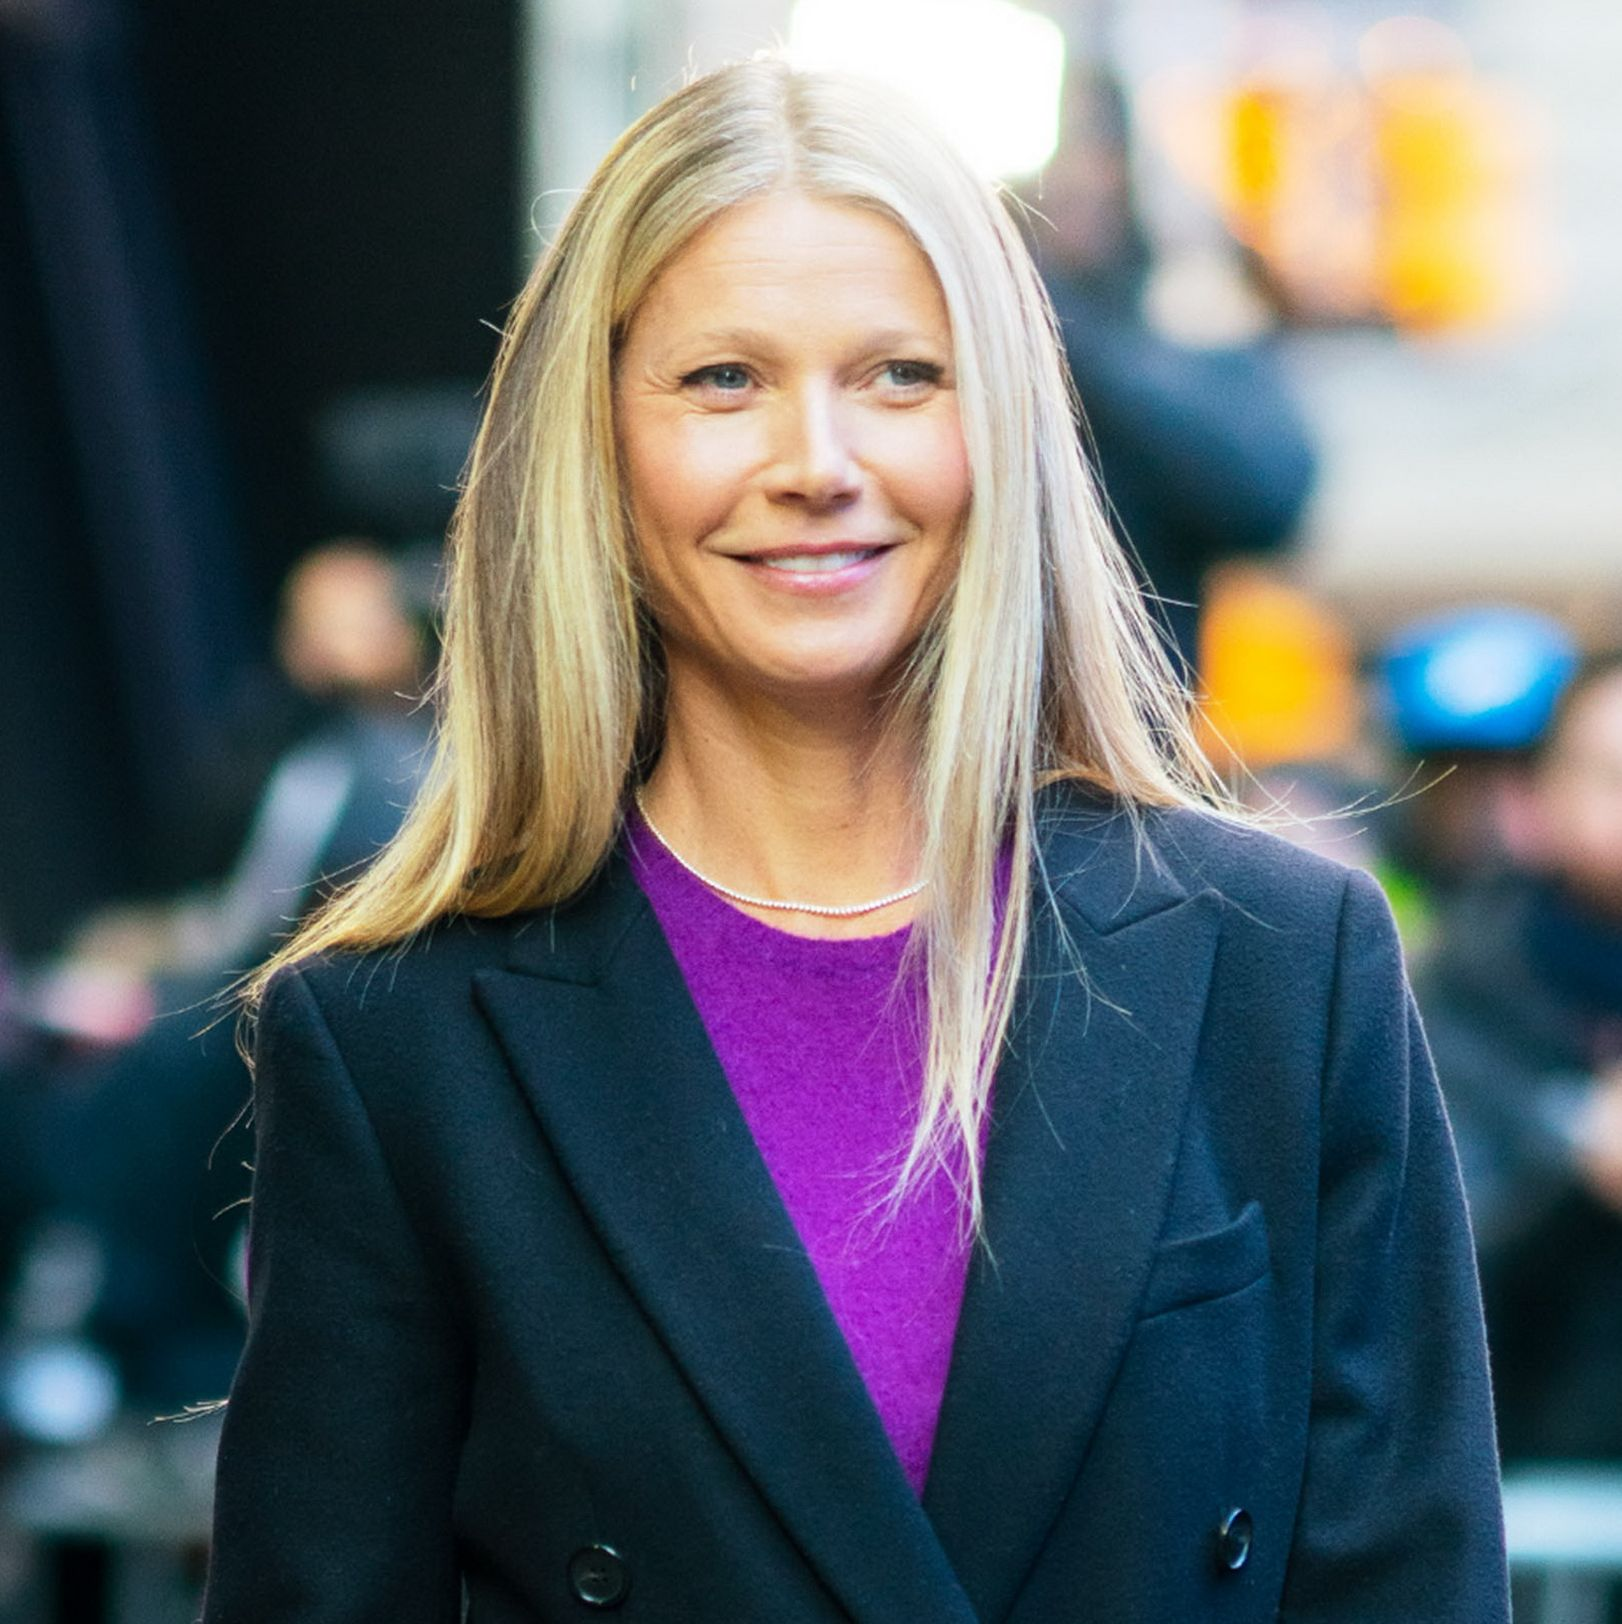 Gwyneth Paltrow's Daughter Apple Martin Had the Sassiest Response to Her Mom's Photo